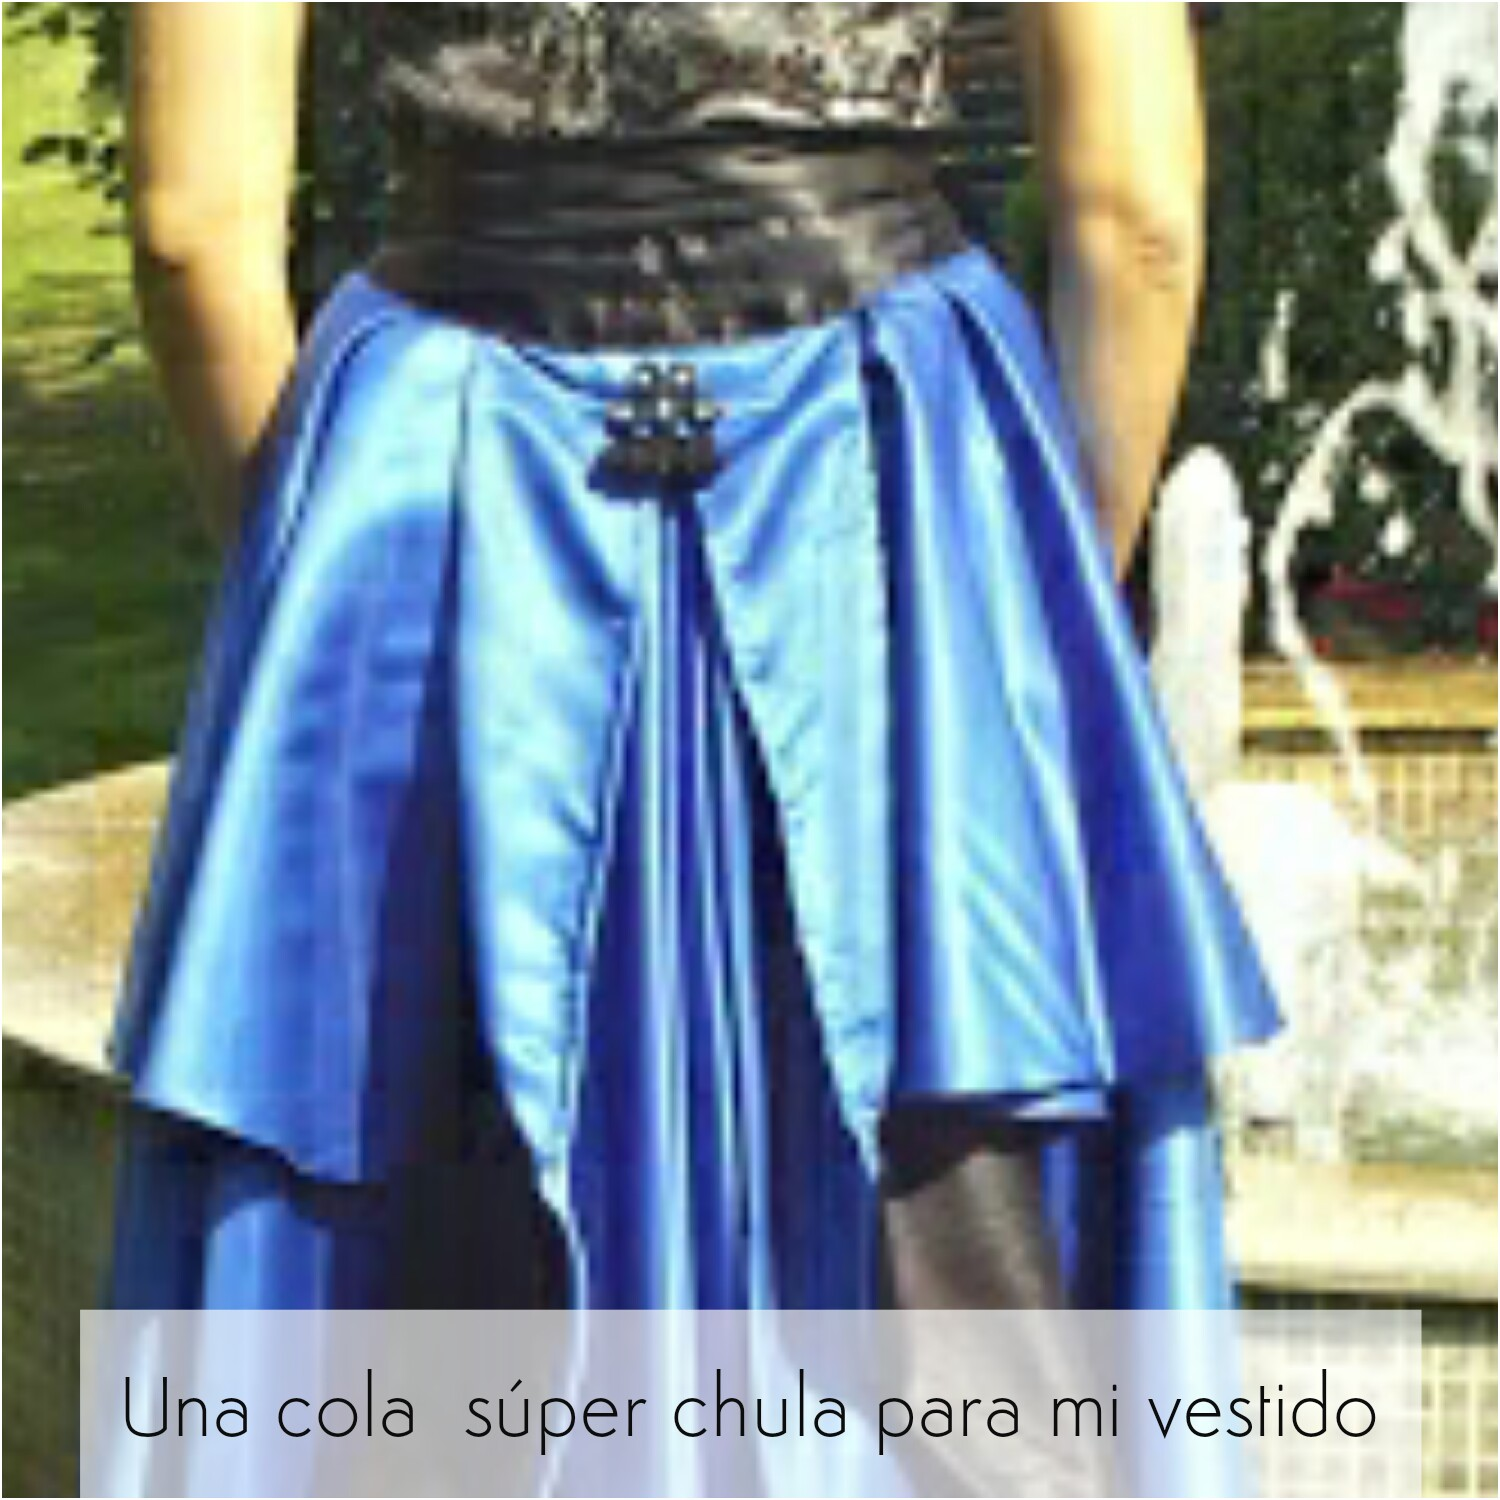 DT1Pc Blog by Nerea SH: UNA COLA DE EMERGENCIA PARA MI VESTIDO